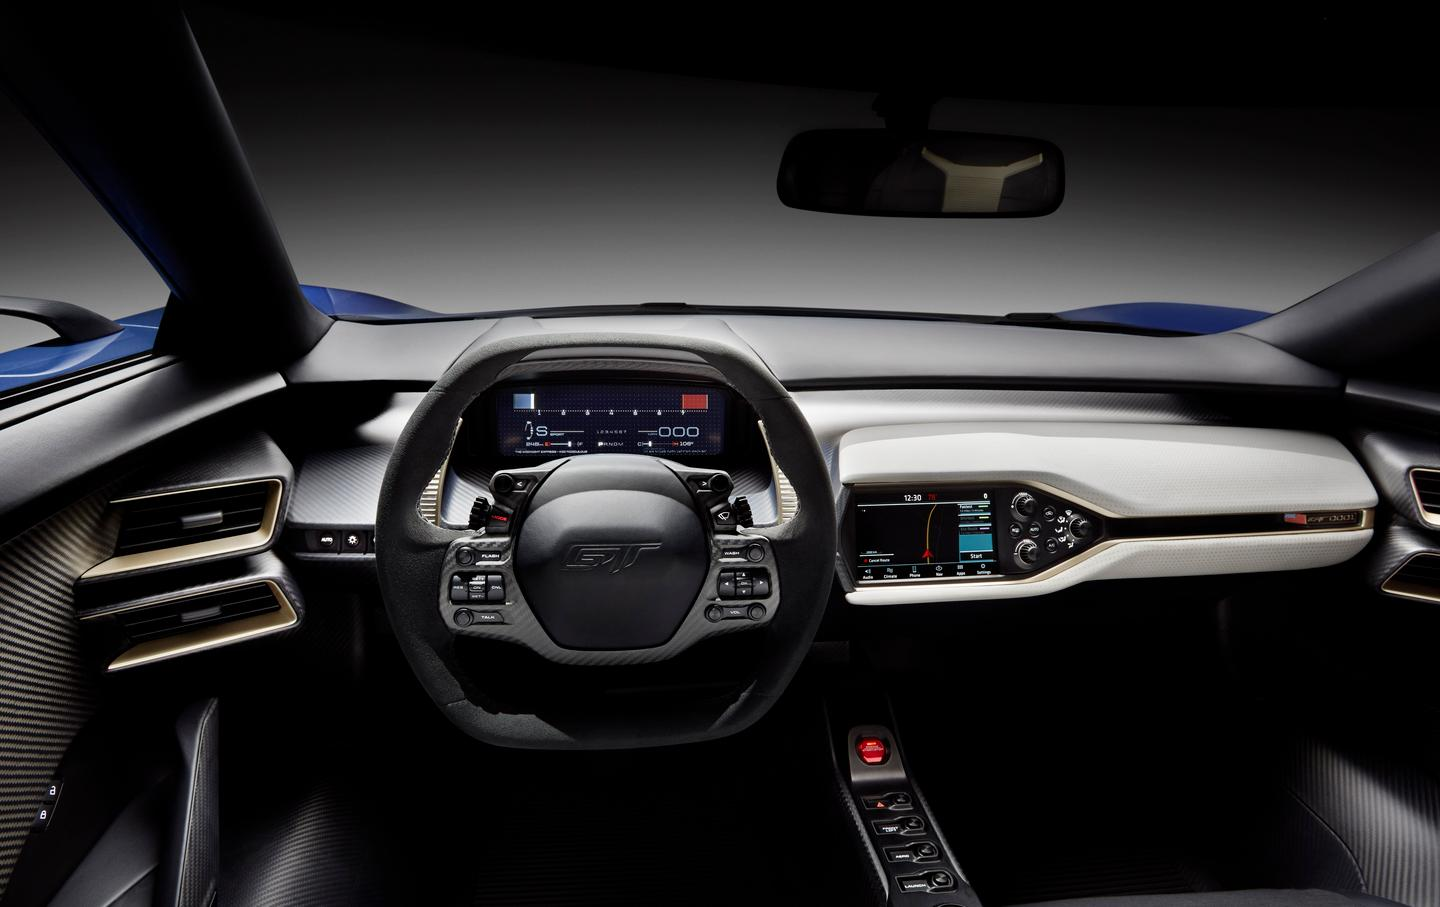 The Ford GT interior helped to inspire Ford designers' exploration of non-automotive design